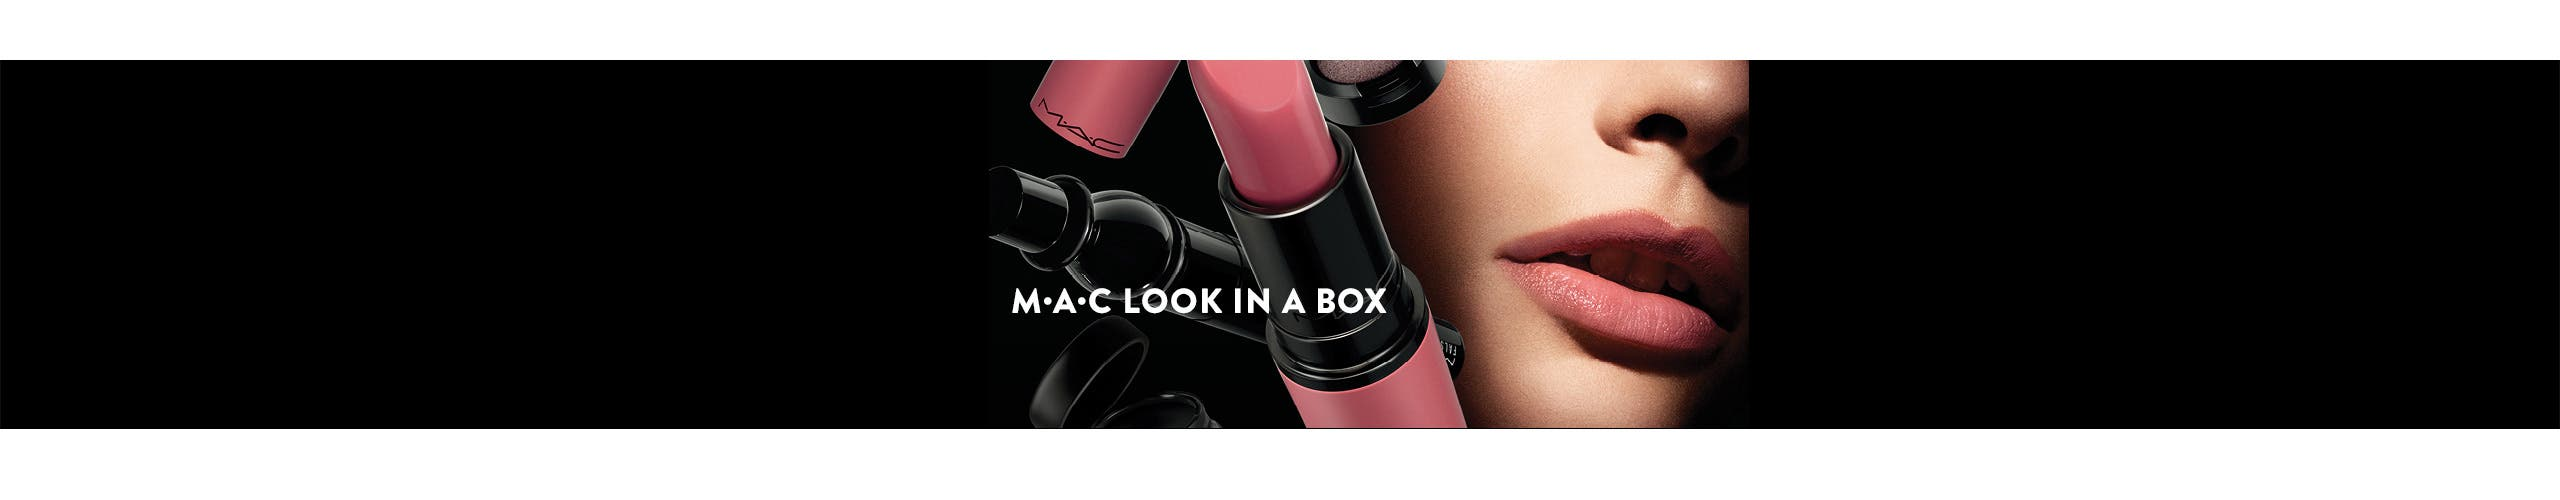 Beauty exclusives: M•A•C Look In A Box makeup and brush kits.